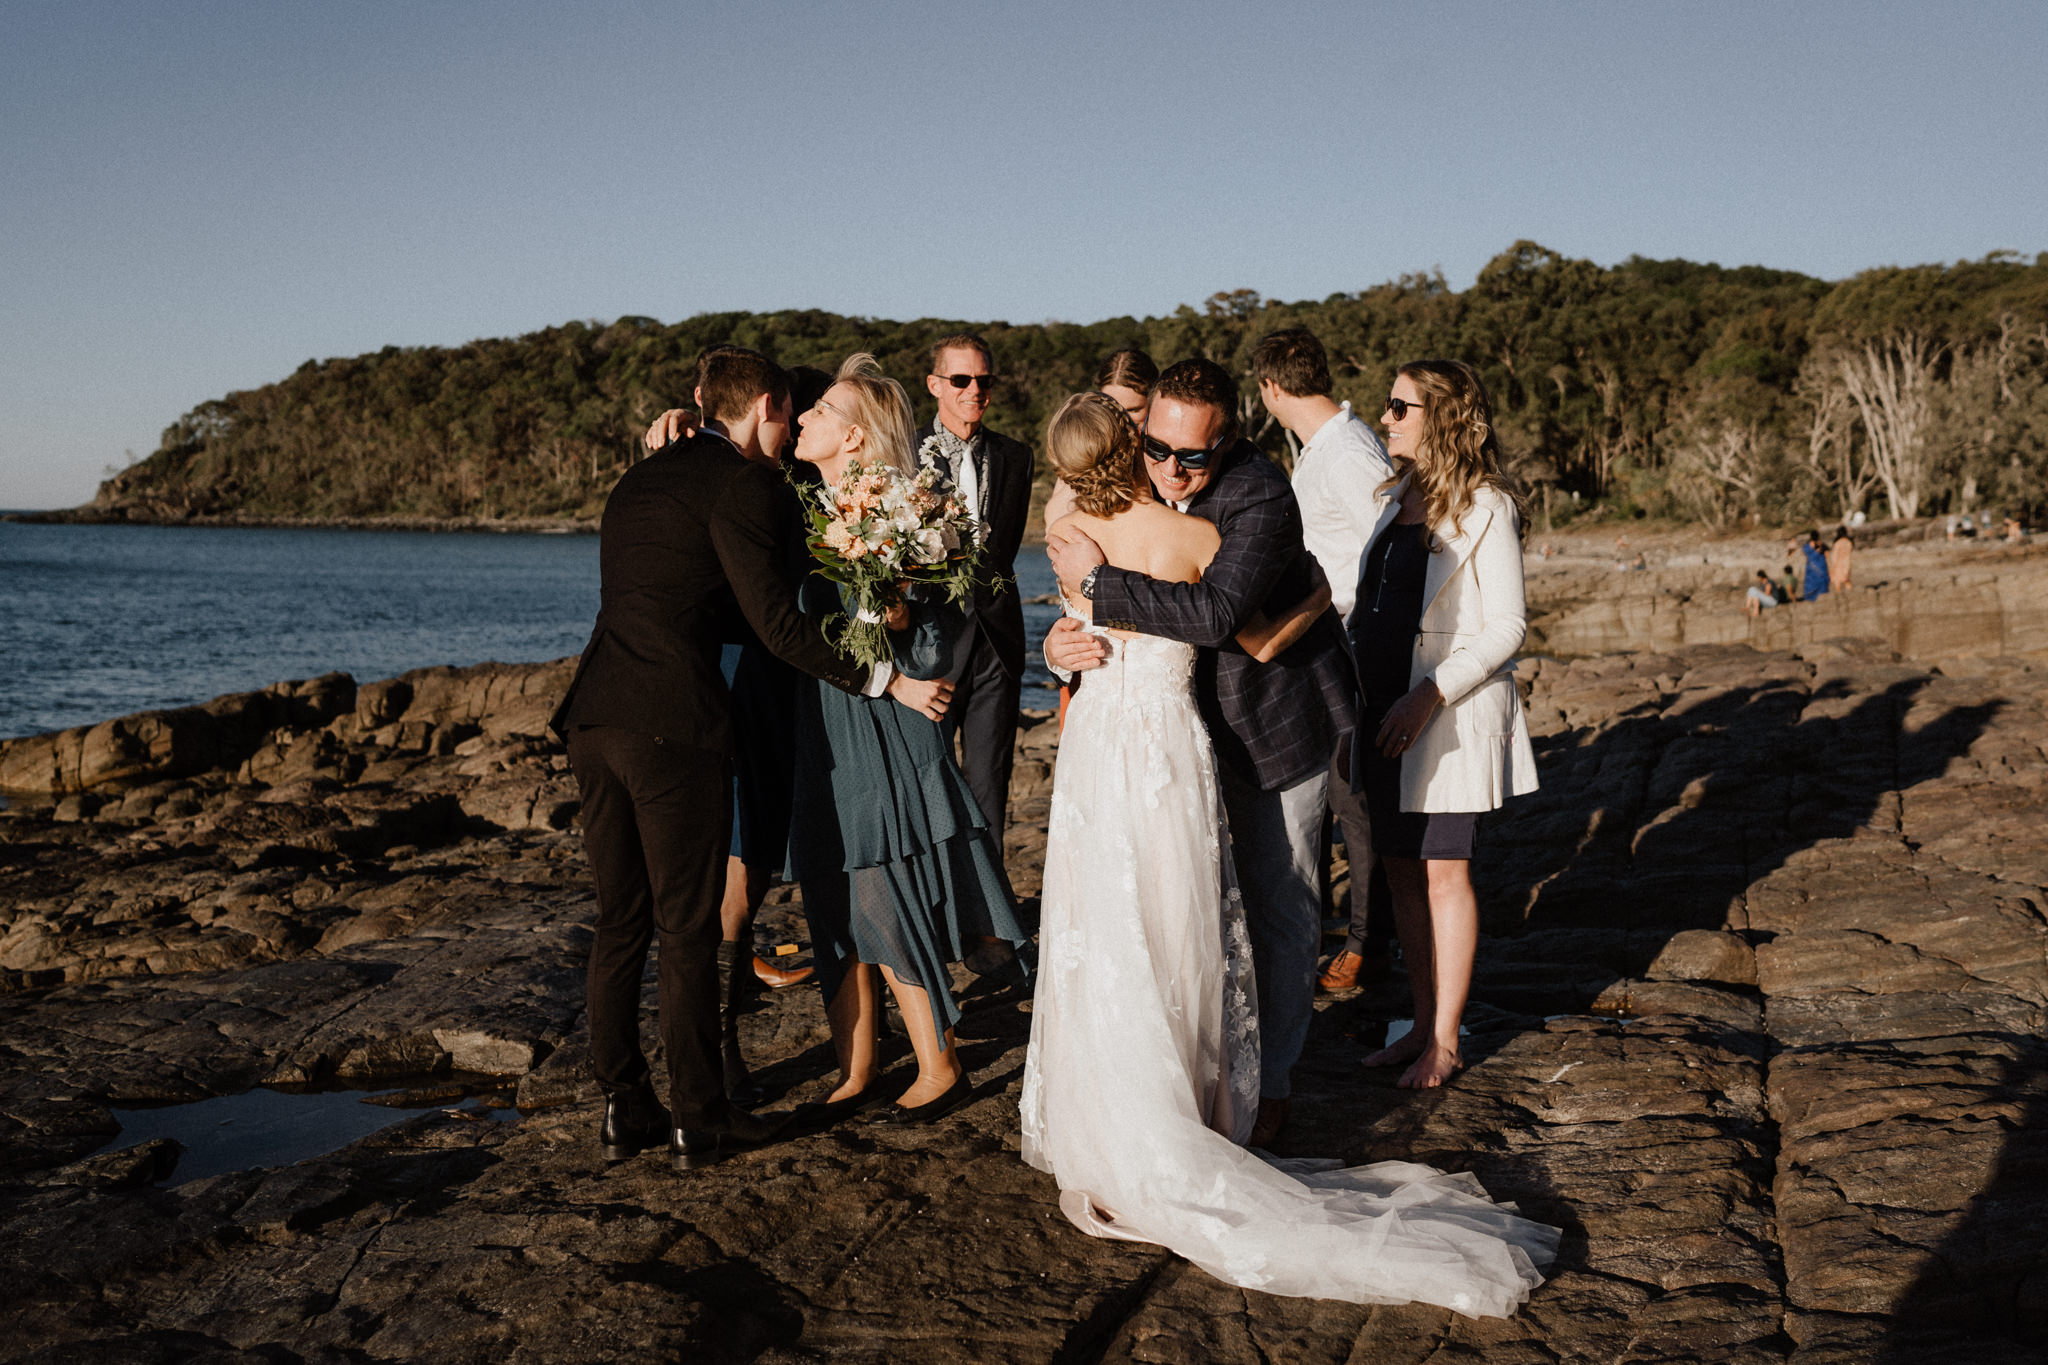 Noosa Byron Bay Elopement Wedding-20.jpg